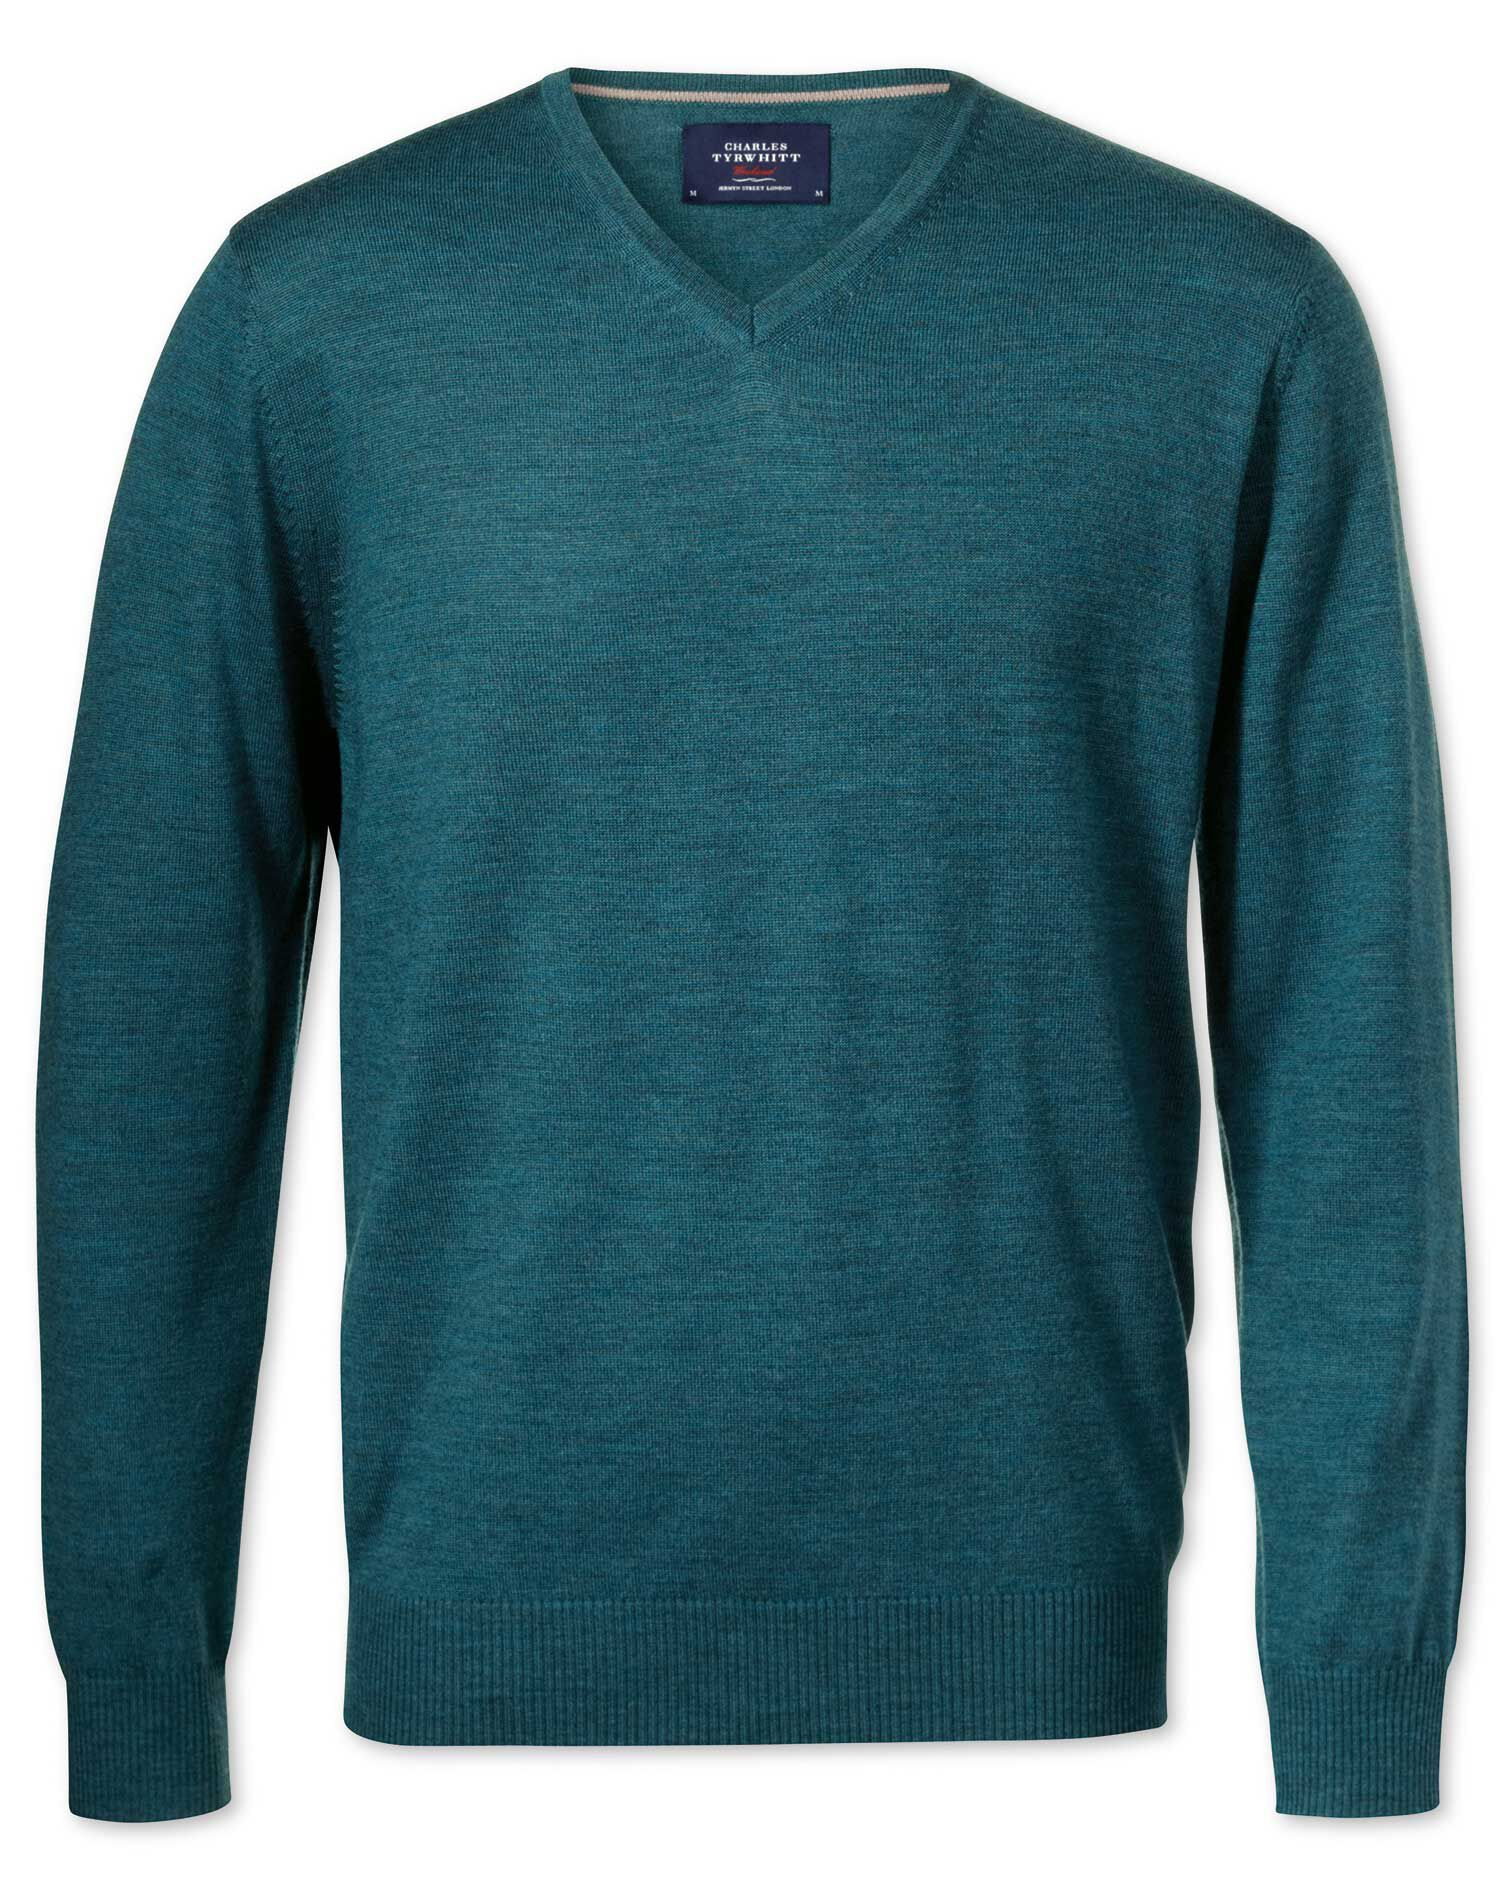 Teal Merino Wool V-Neck Jumper Size Medium by Charles Tyrwhitt